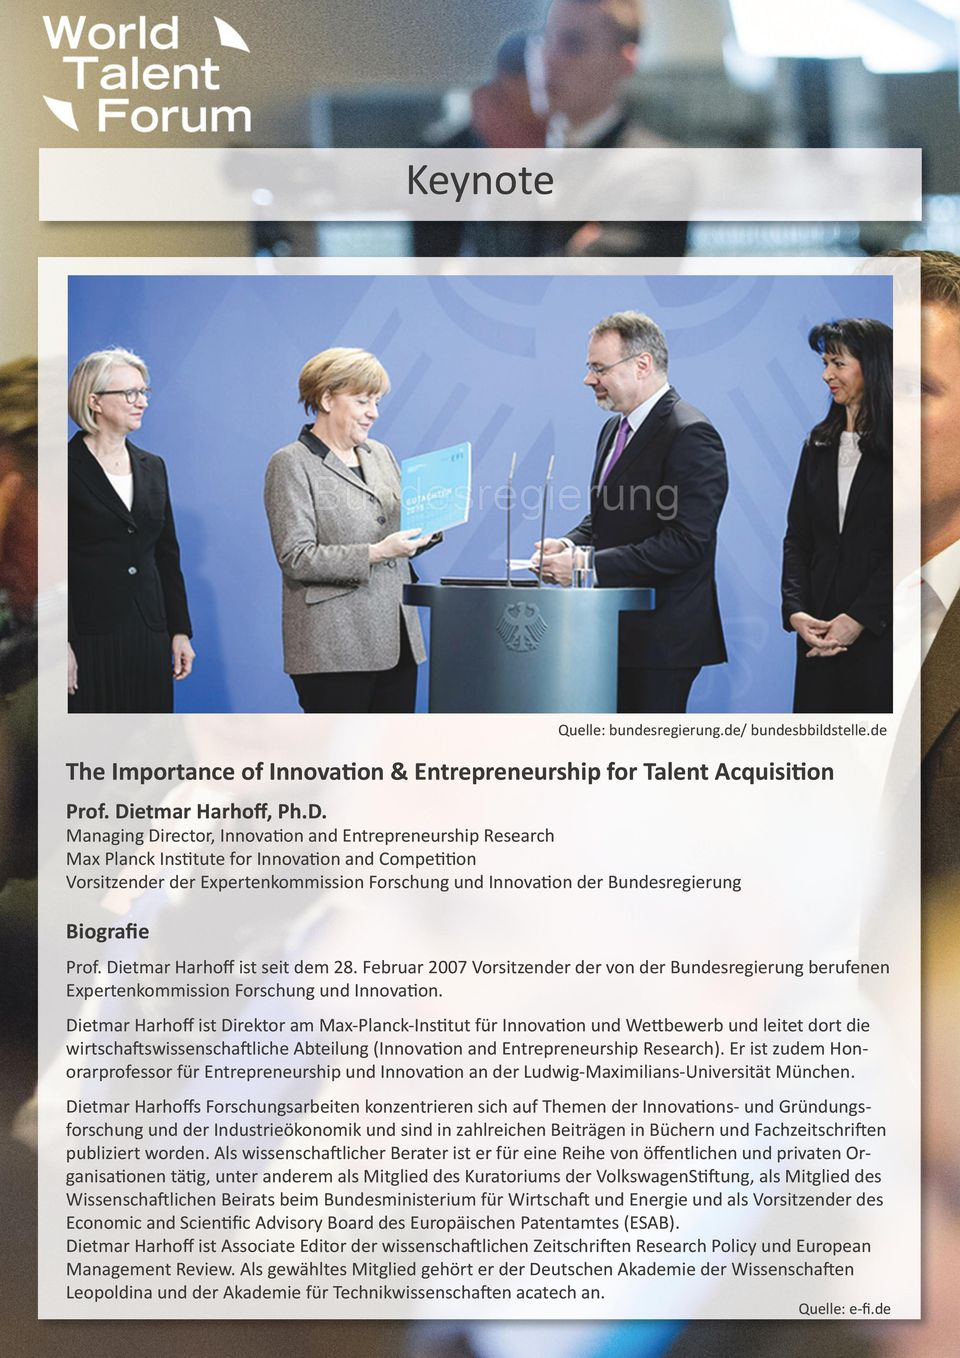 Managing Director, Innovation and Entrepreneurship Research Max Planck Institute for Innovation and Competition Vorsitzender der Expertenkommission Forschung und Innovation der Bundesregierung